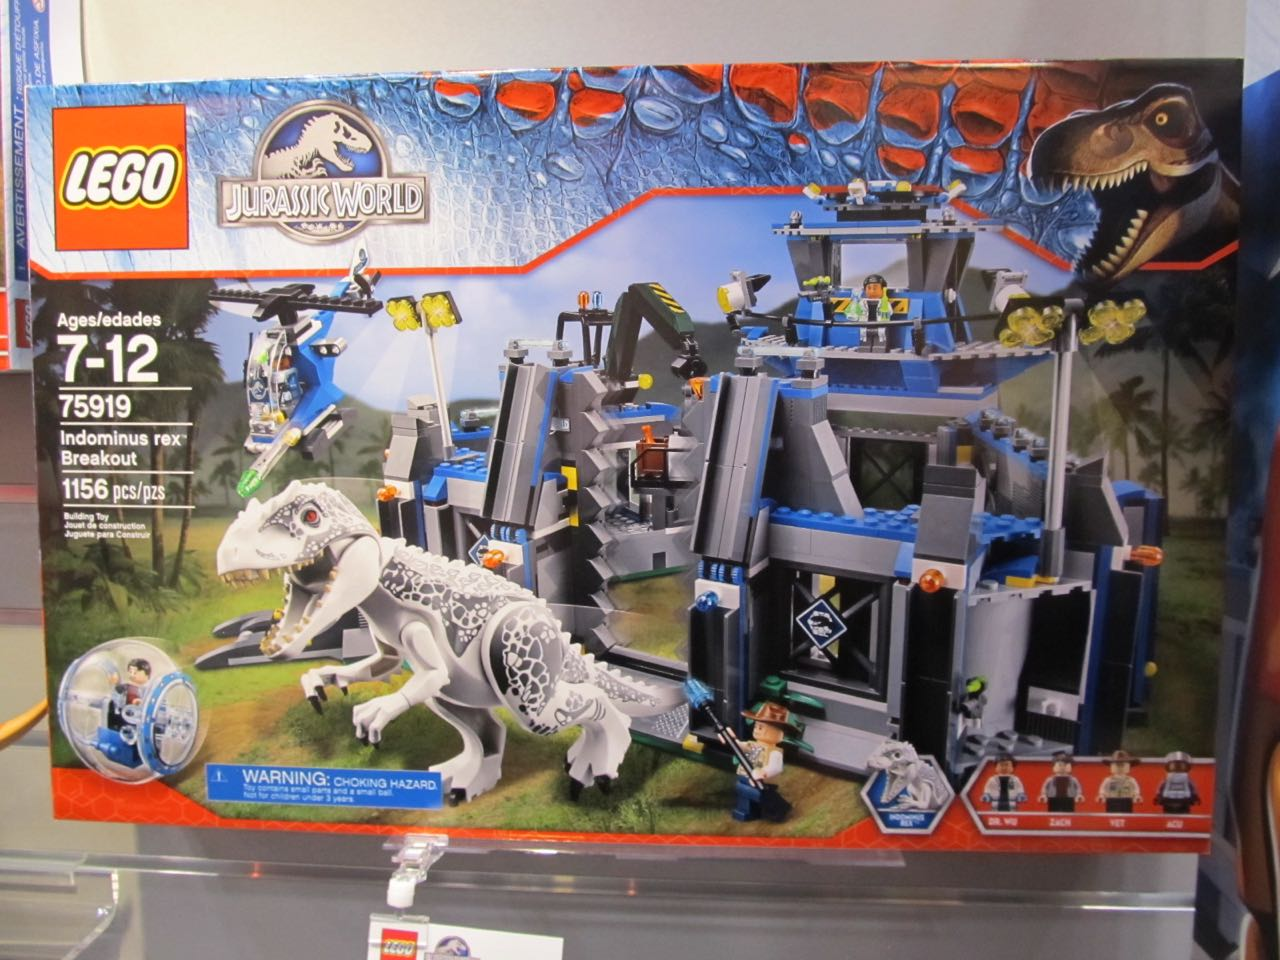 2015 hottest holiday toys lego jurassic world review - Jurasic park lego ...